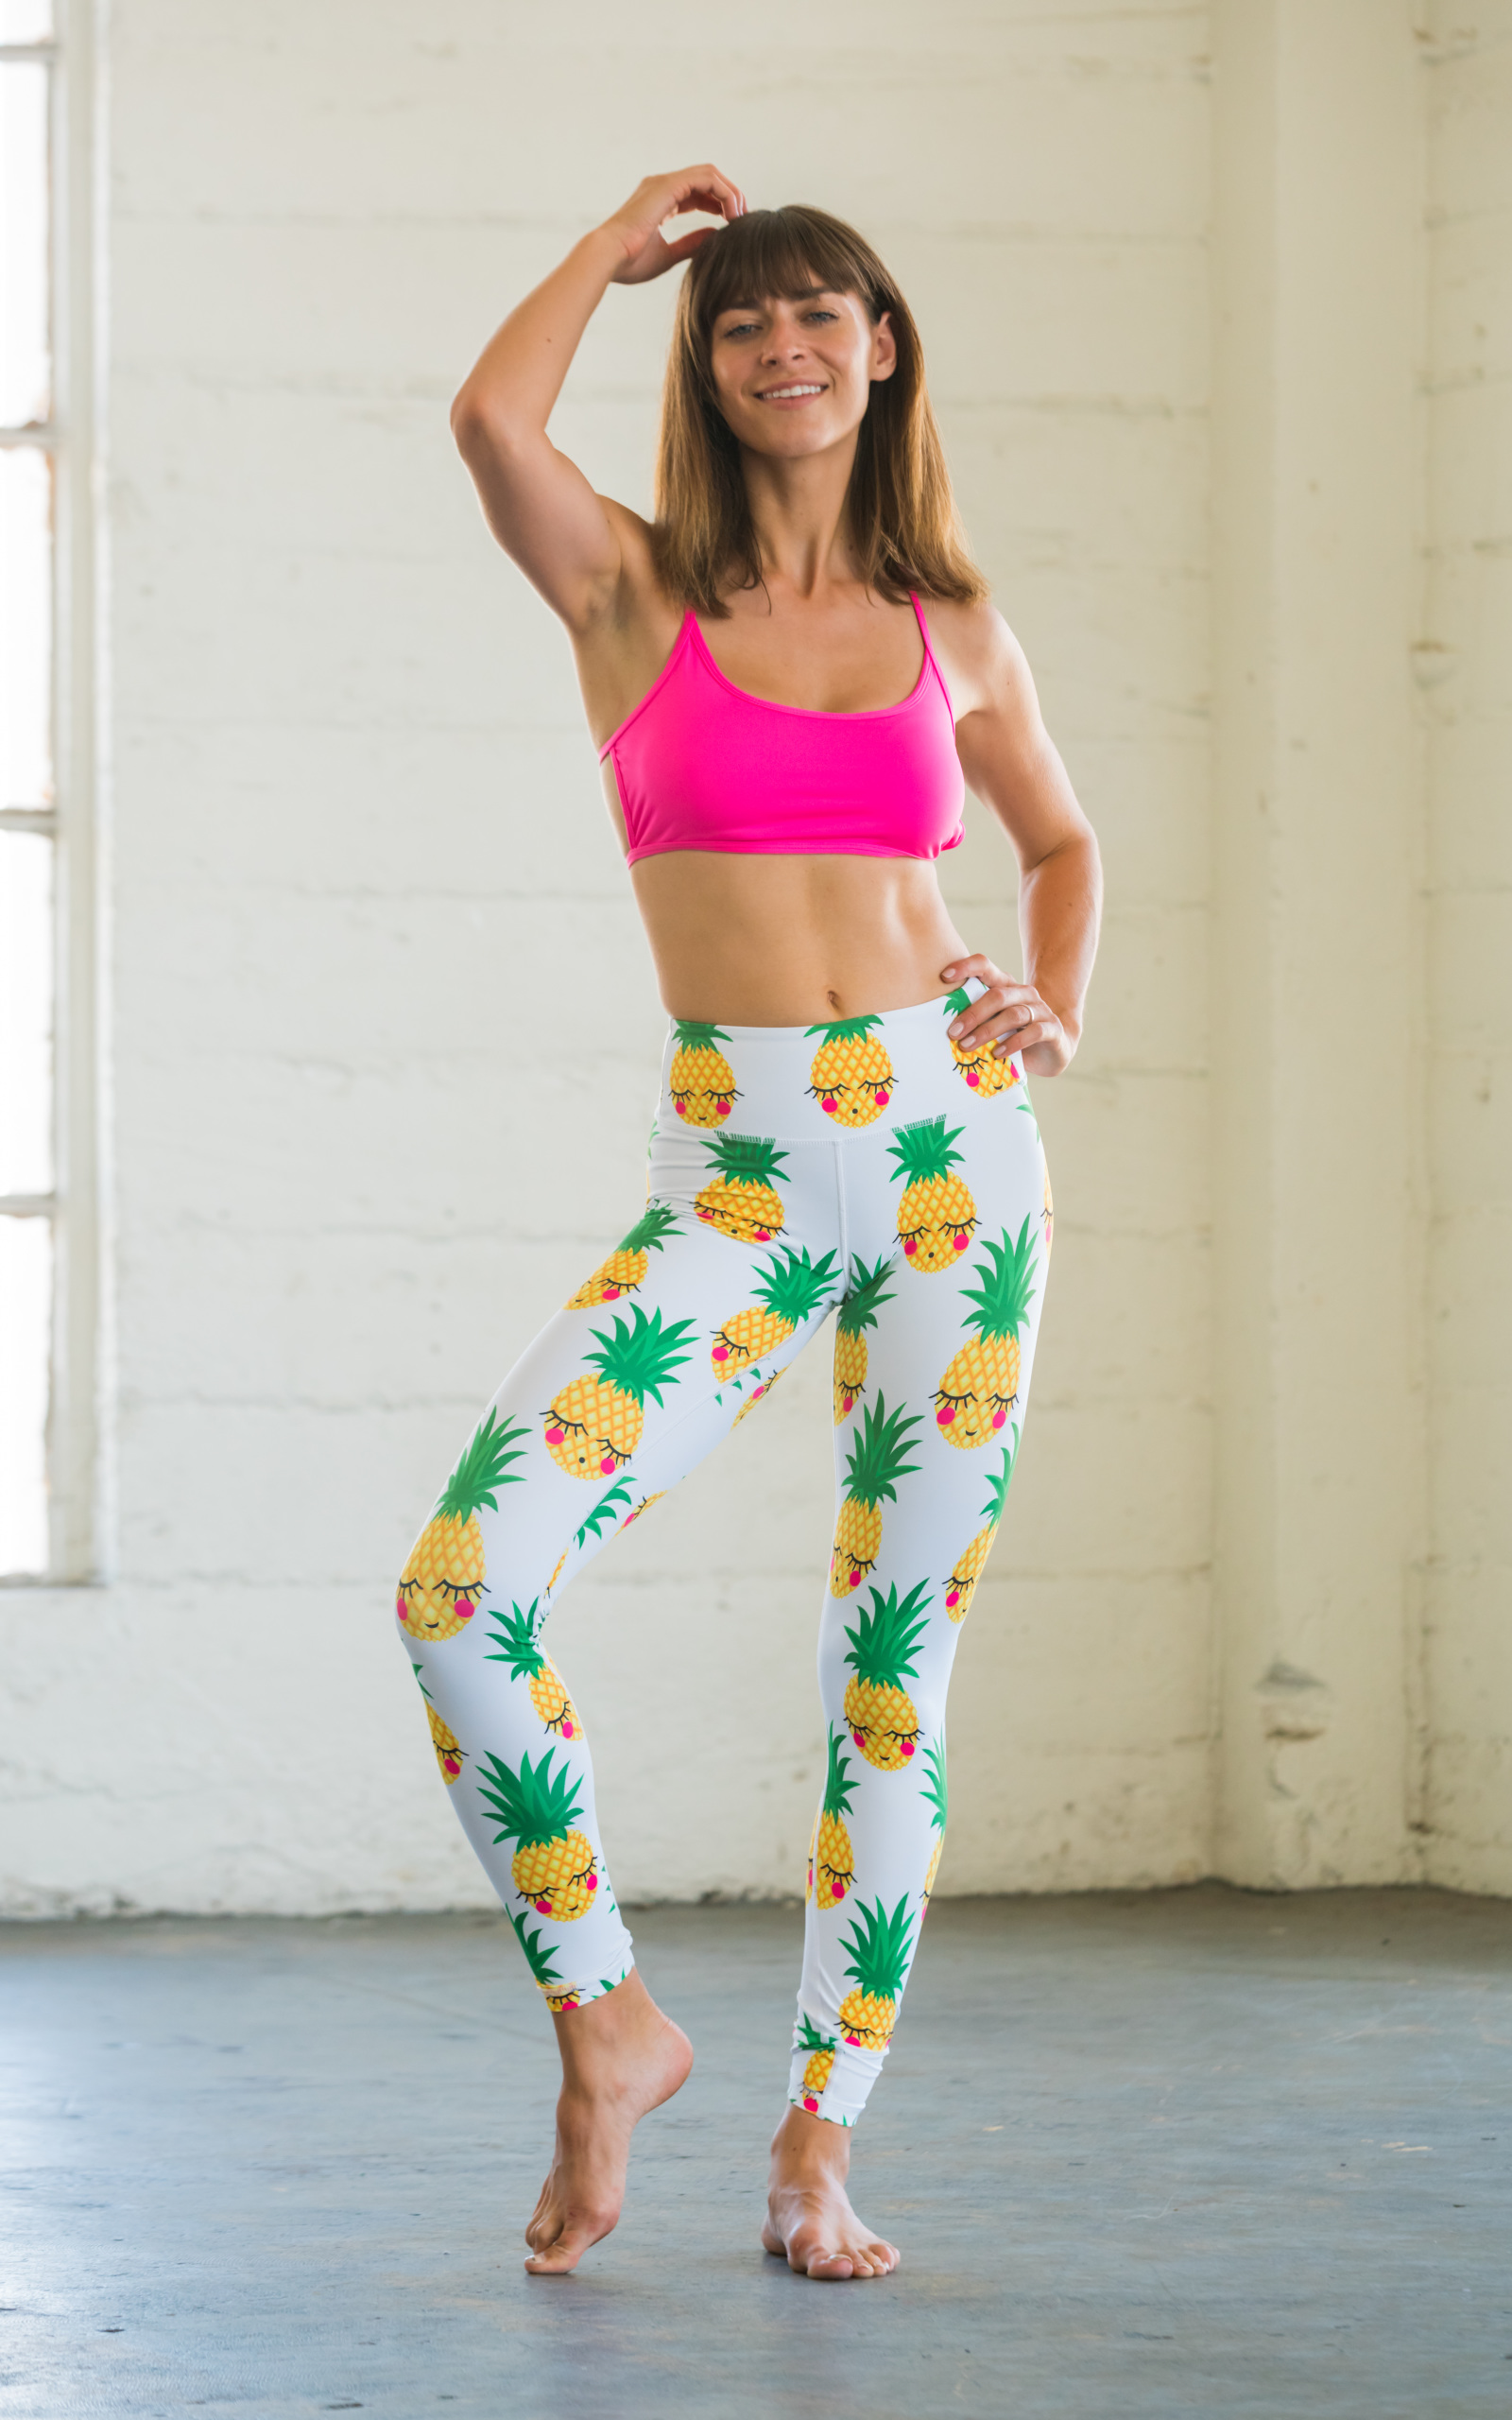 43f9304617bedf Details about Flexi Lexi Fitness Womens Pineapple Yoga Pants Sports  Lightweight Leggings